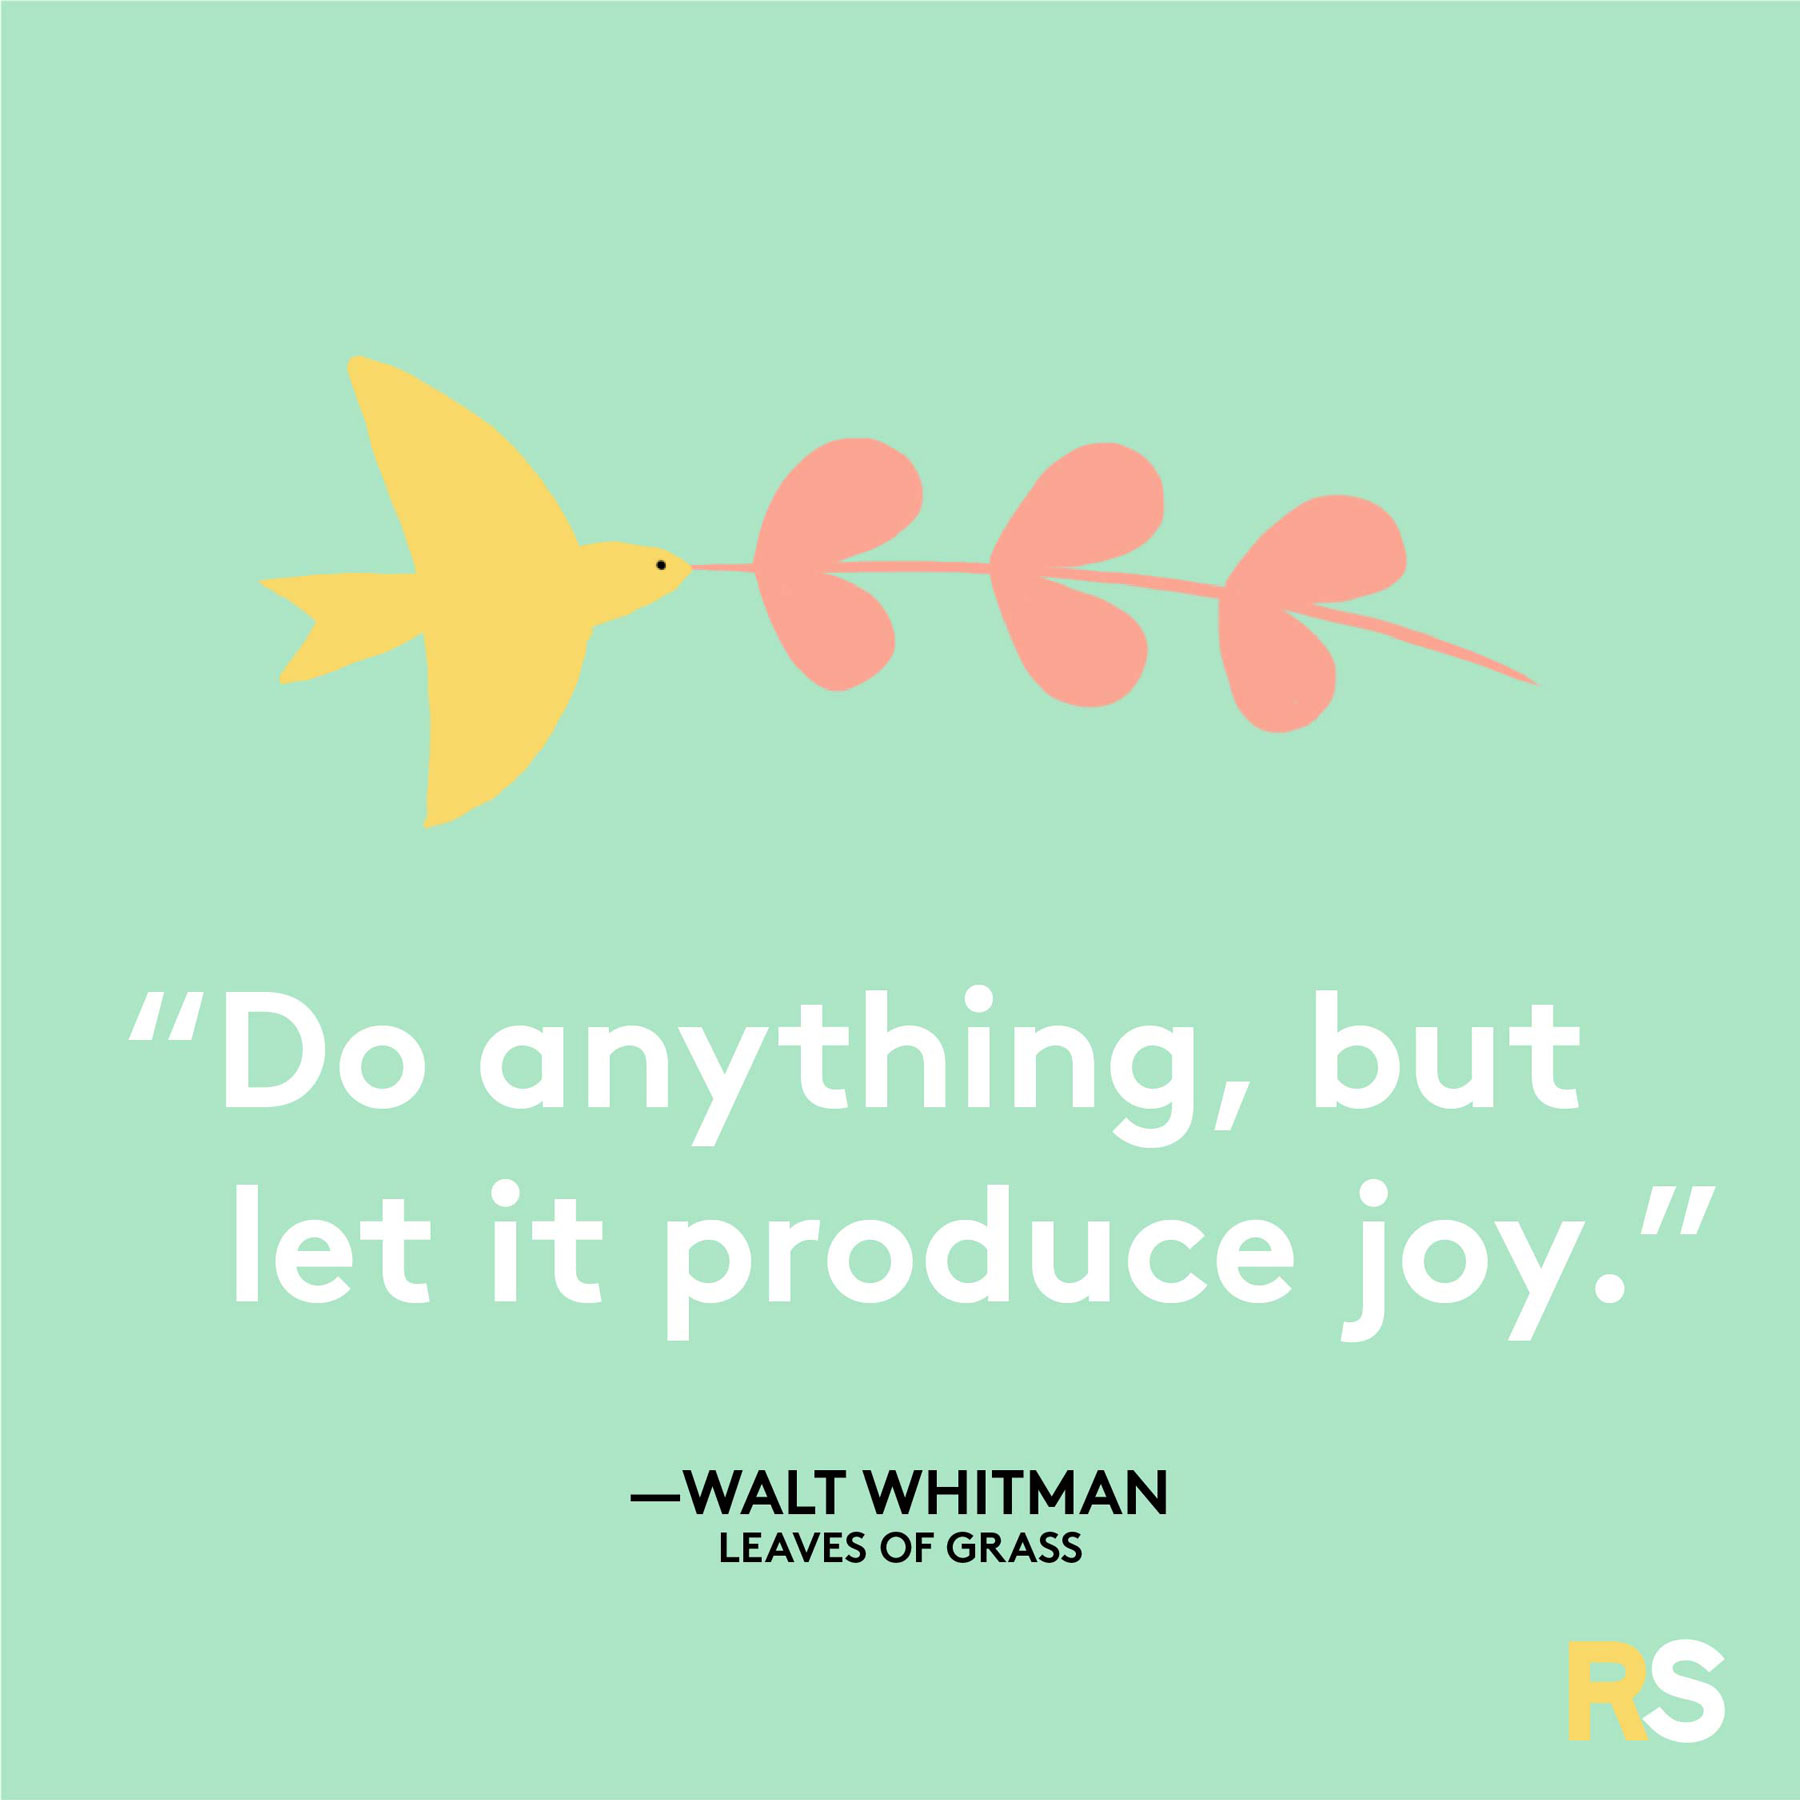 Positive motivating quotes, captions, messages – Walt Whitman Leaves of Grass quote